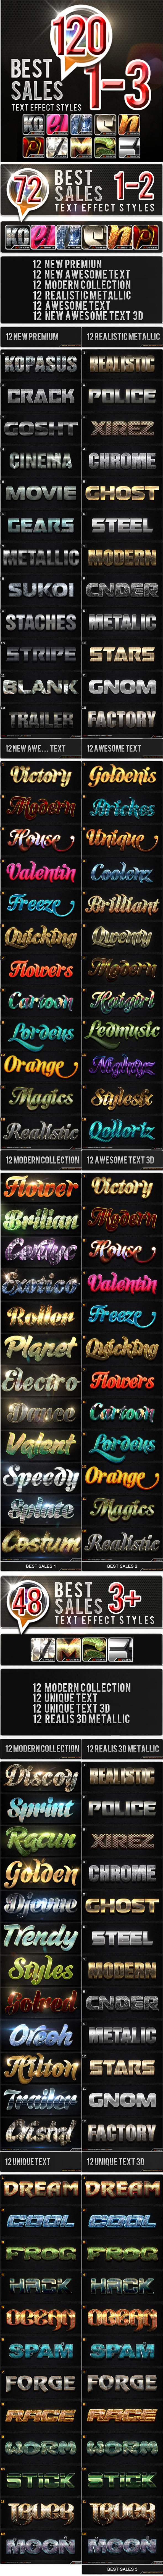 120 Sales_1-3 Bundle - Text Effects Styles